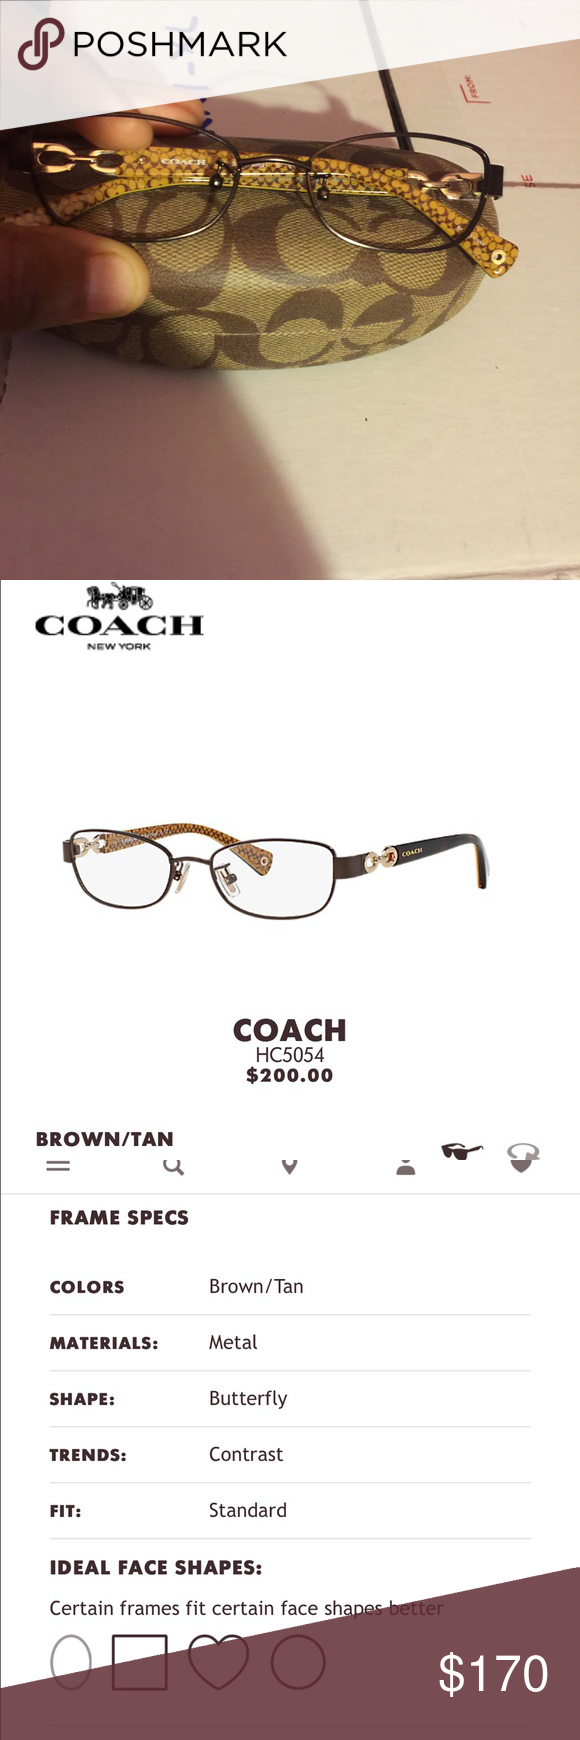 Authentic coach frames HC5054(Faina) Brand new! No lenses in them ...